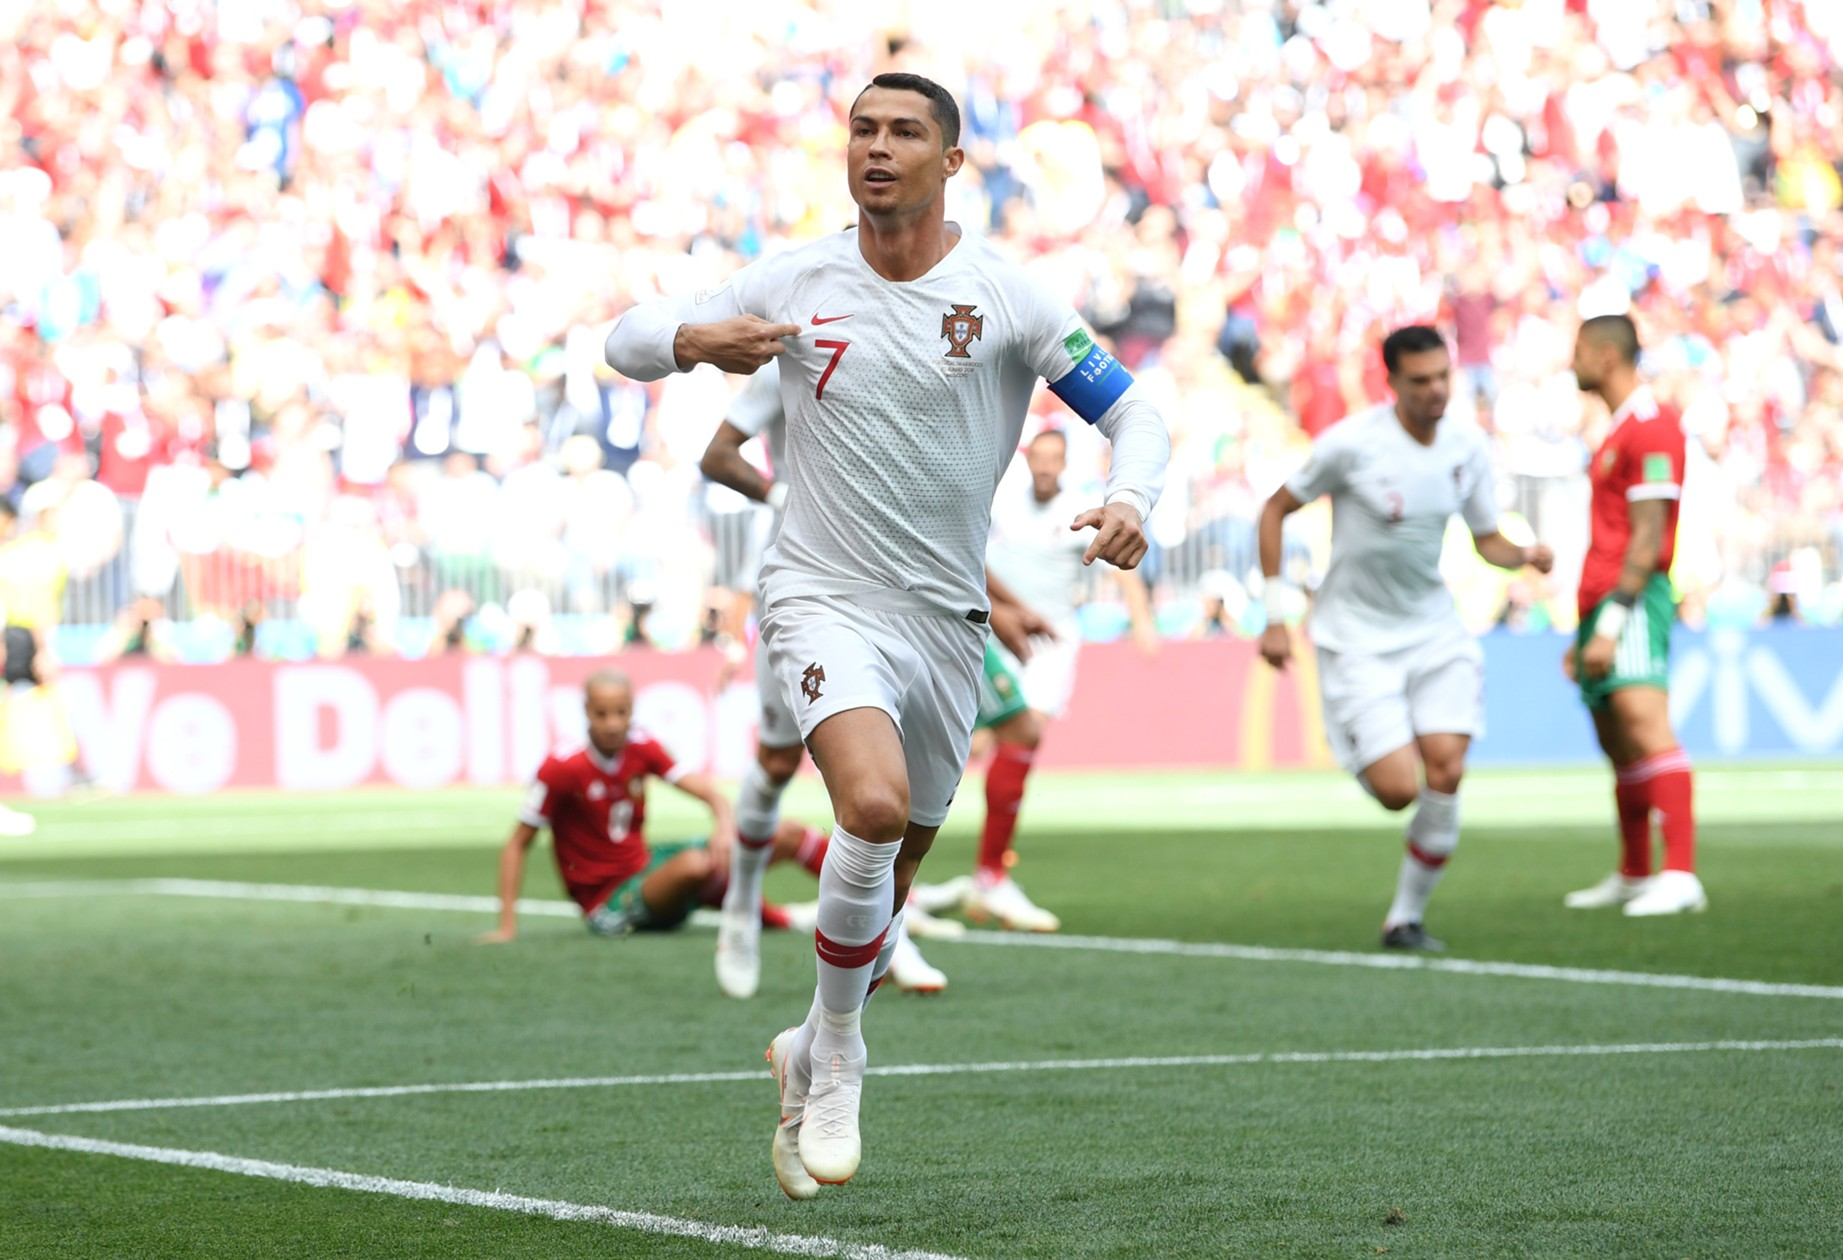 cristianoronaldo cropped 1mig2407y68pz1a0teu7fn1bsf - VIDEO: Portugal 1-0 Morocco (2018 World Cup) Highlights